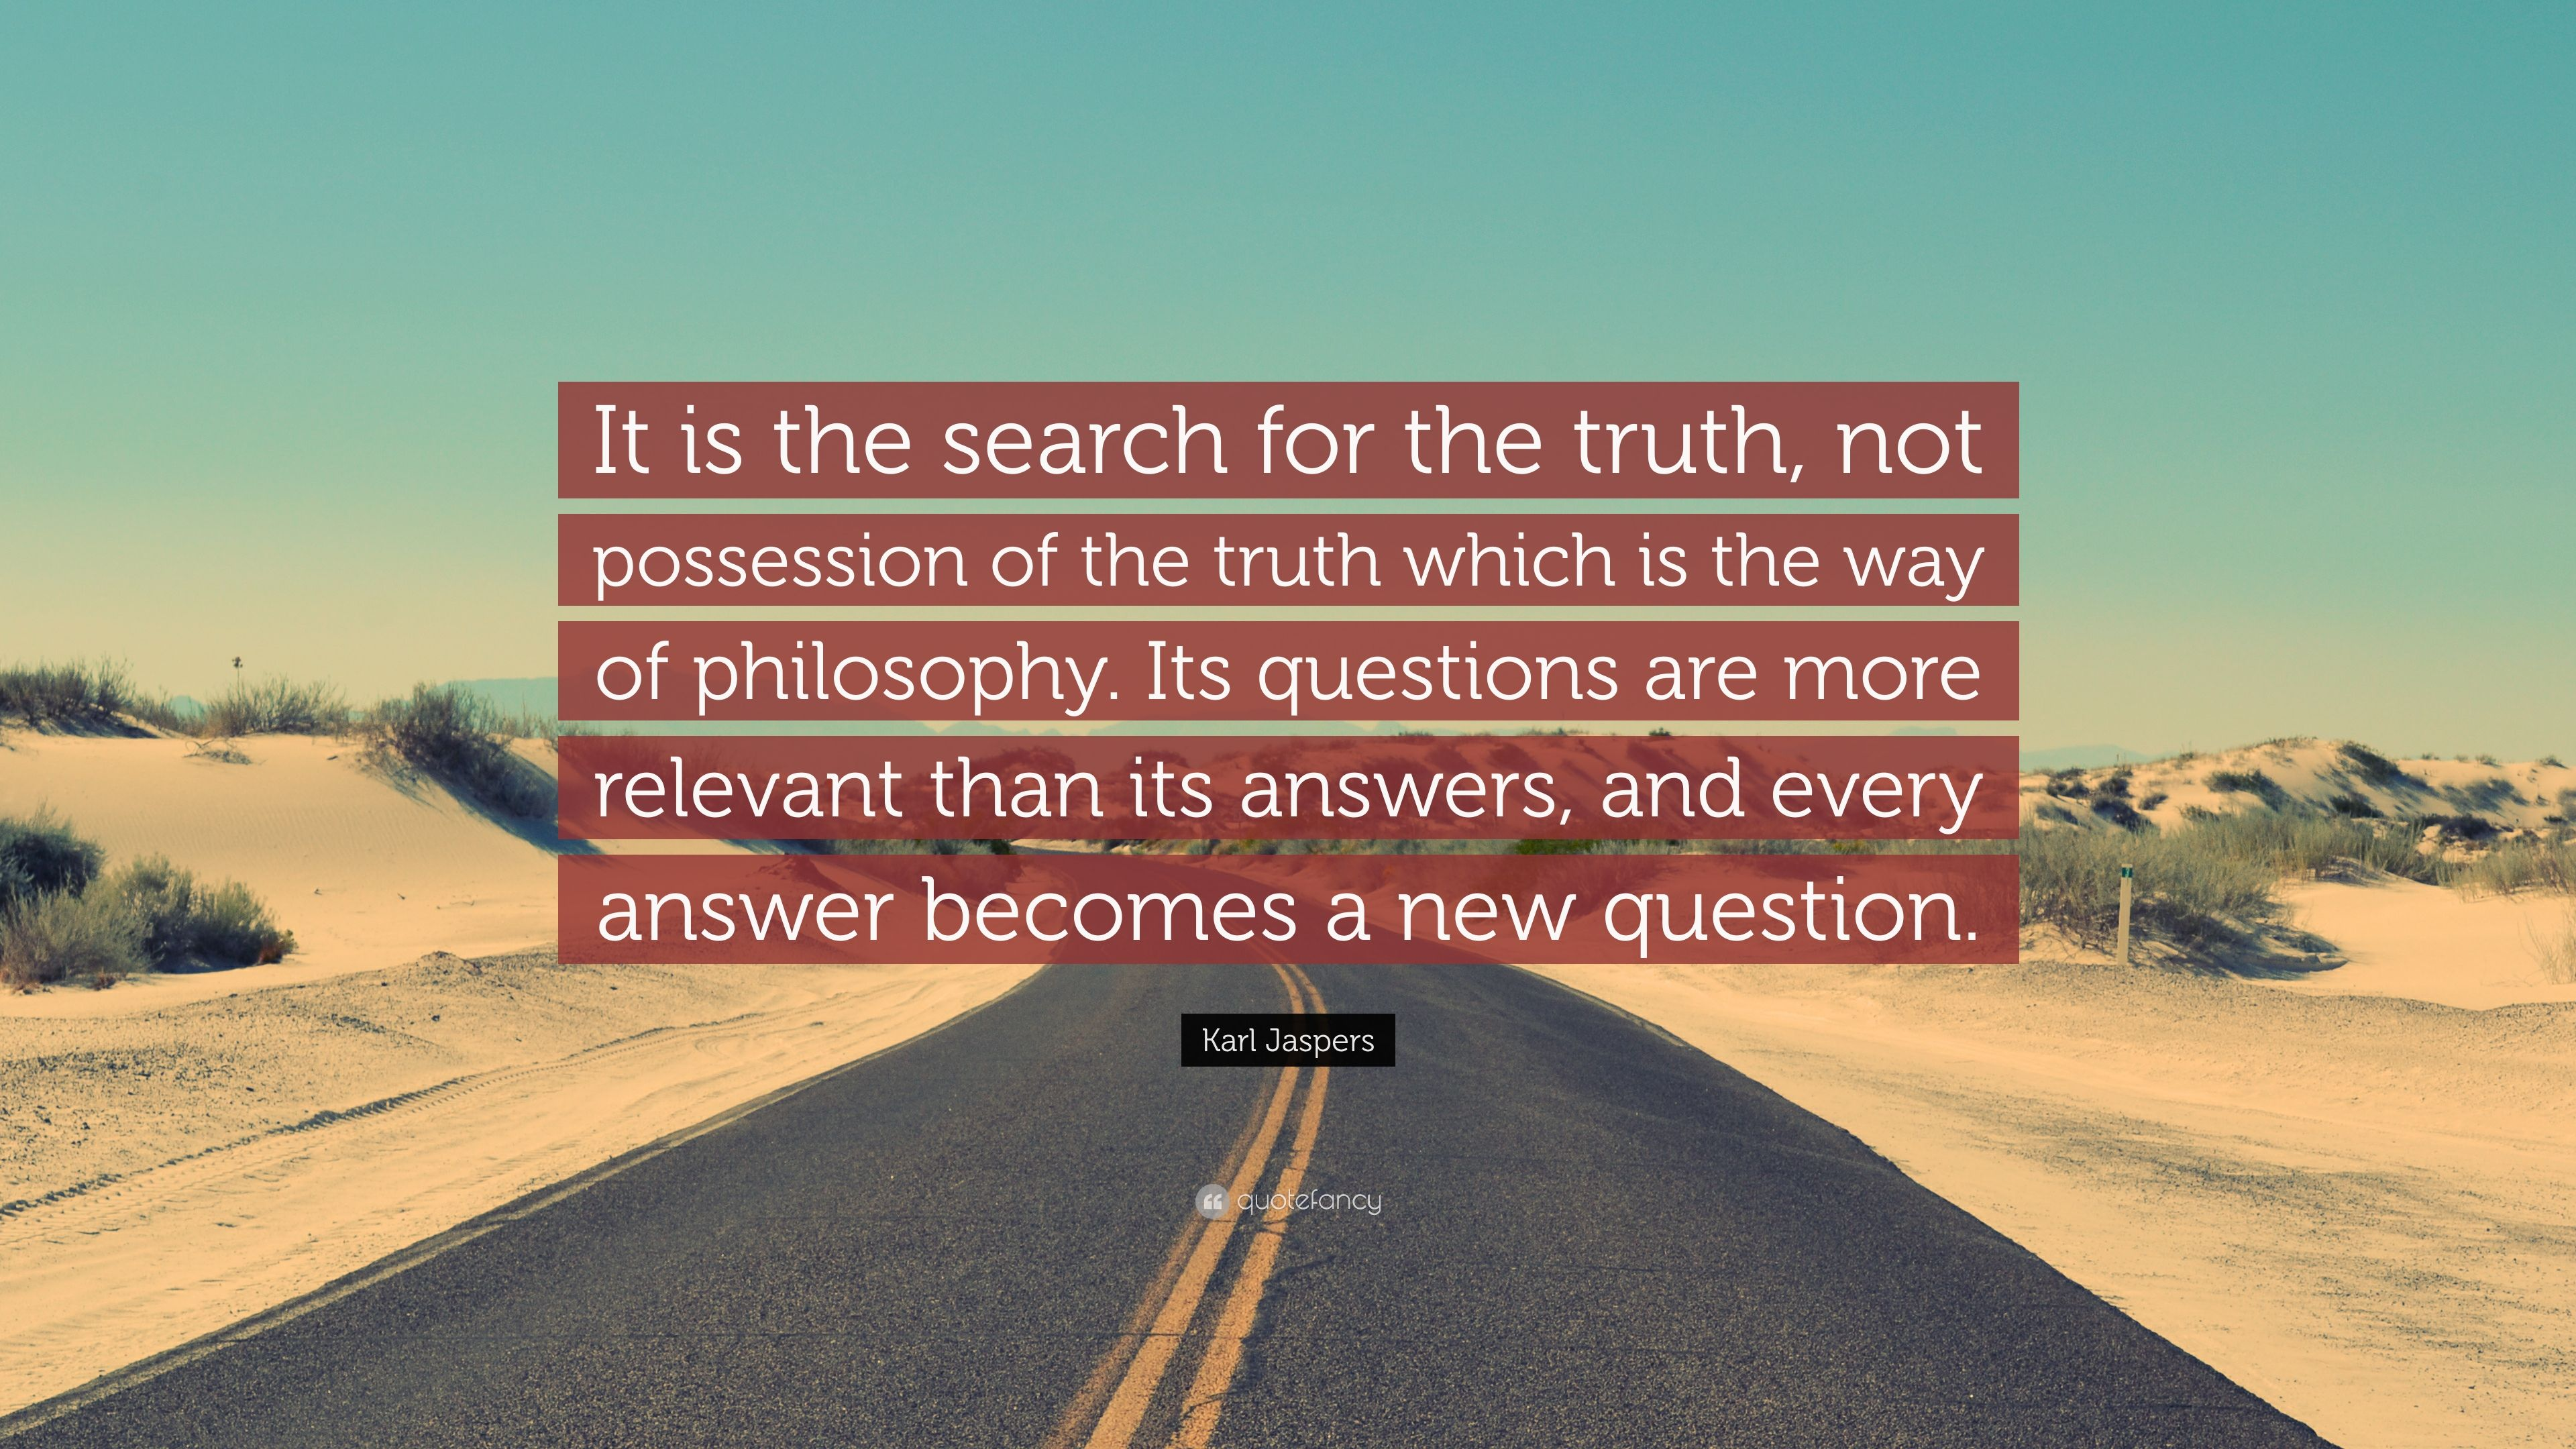 The questions of philosophy are the way to truth